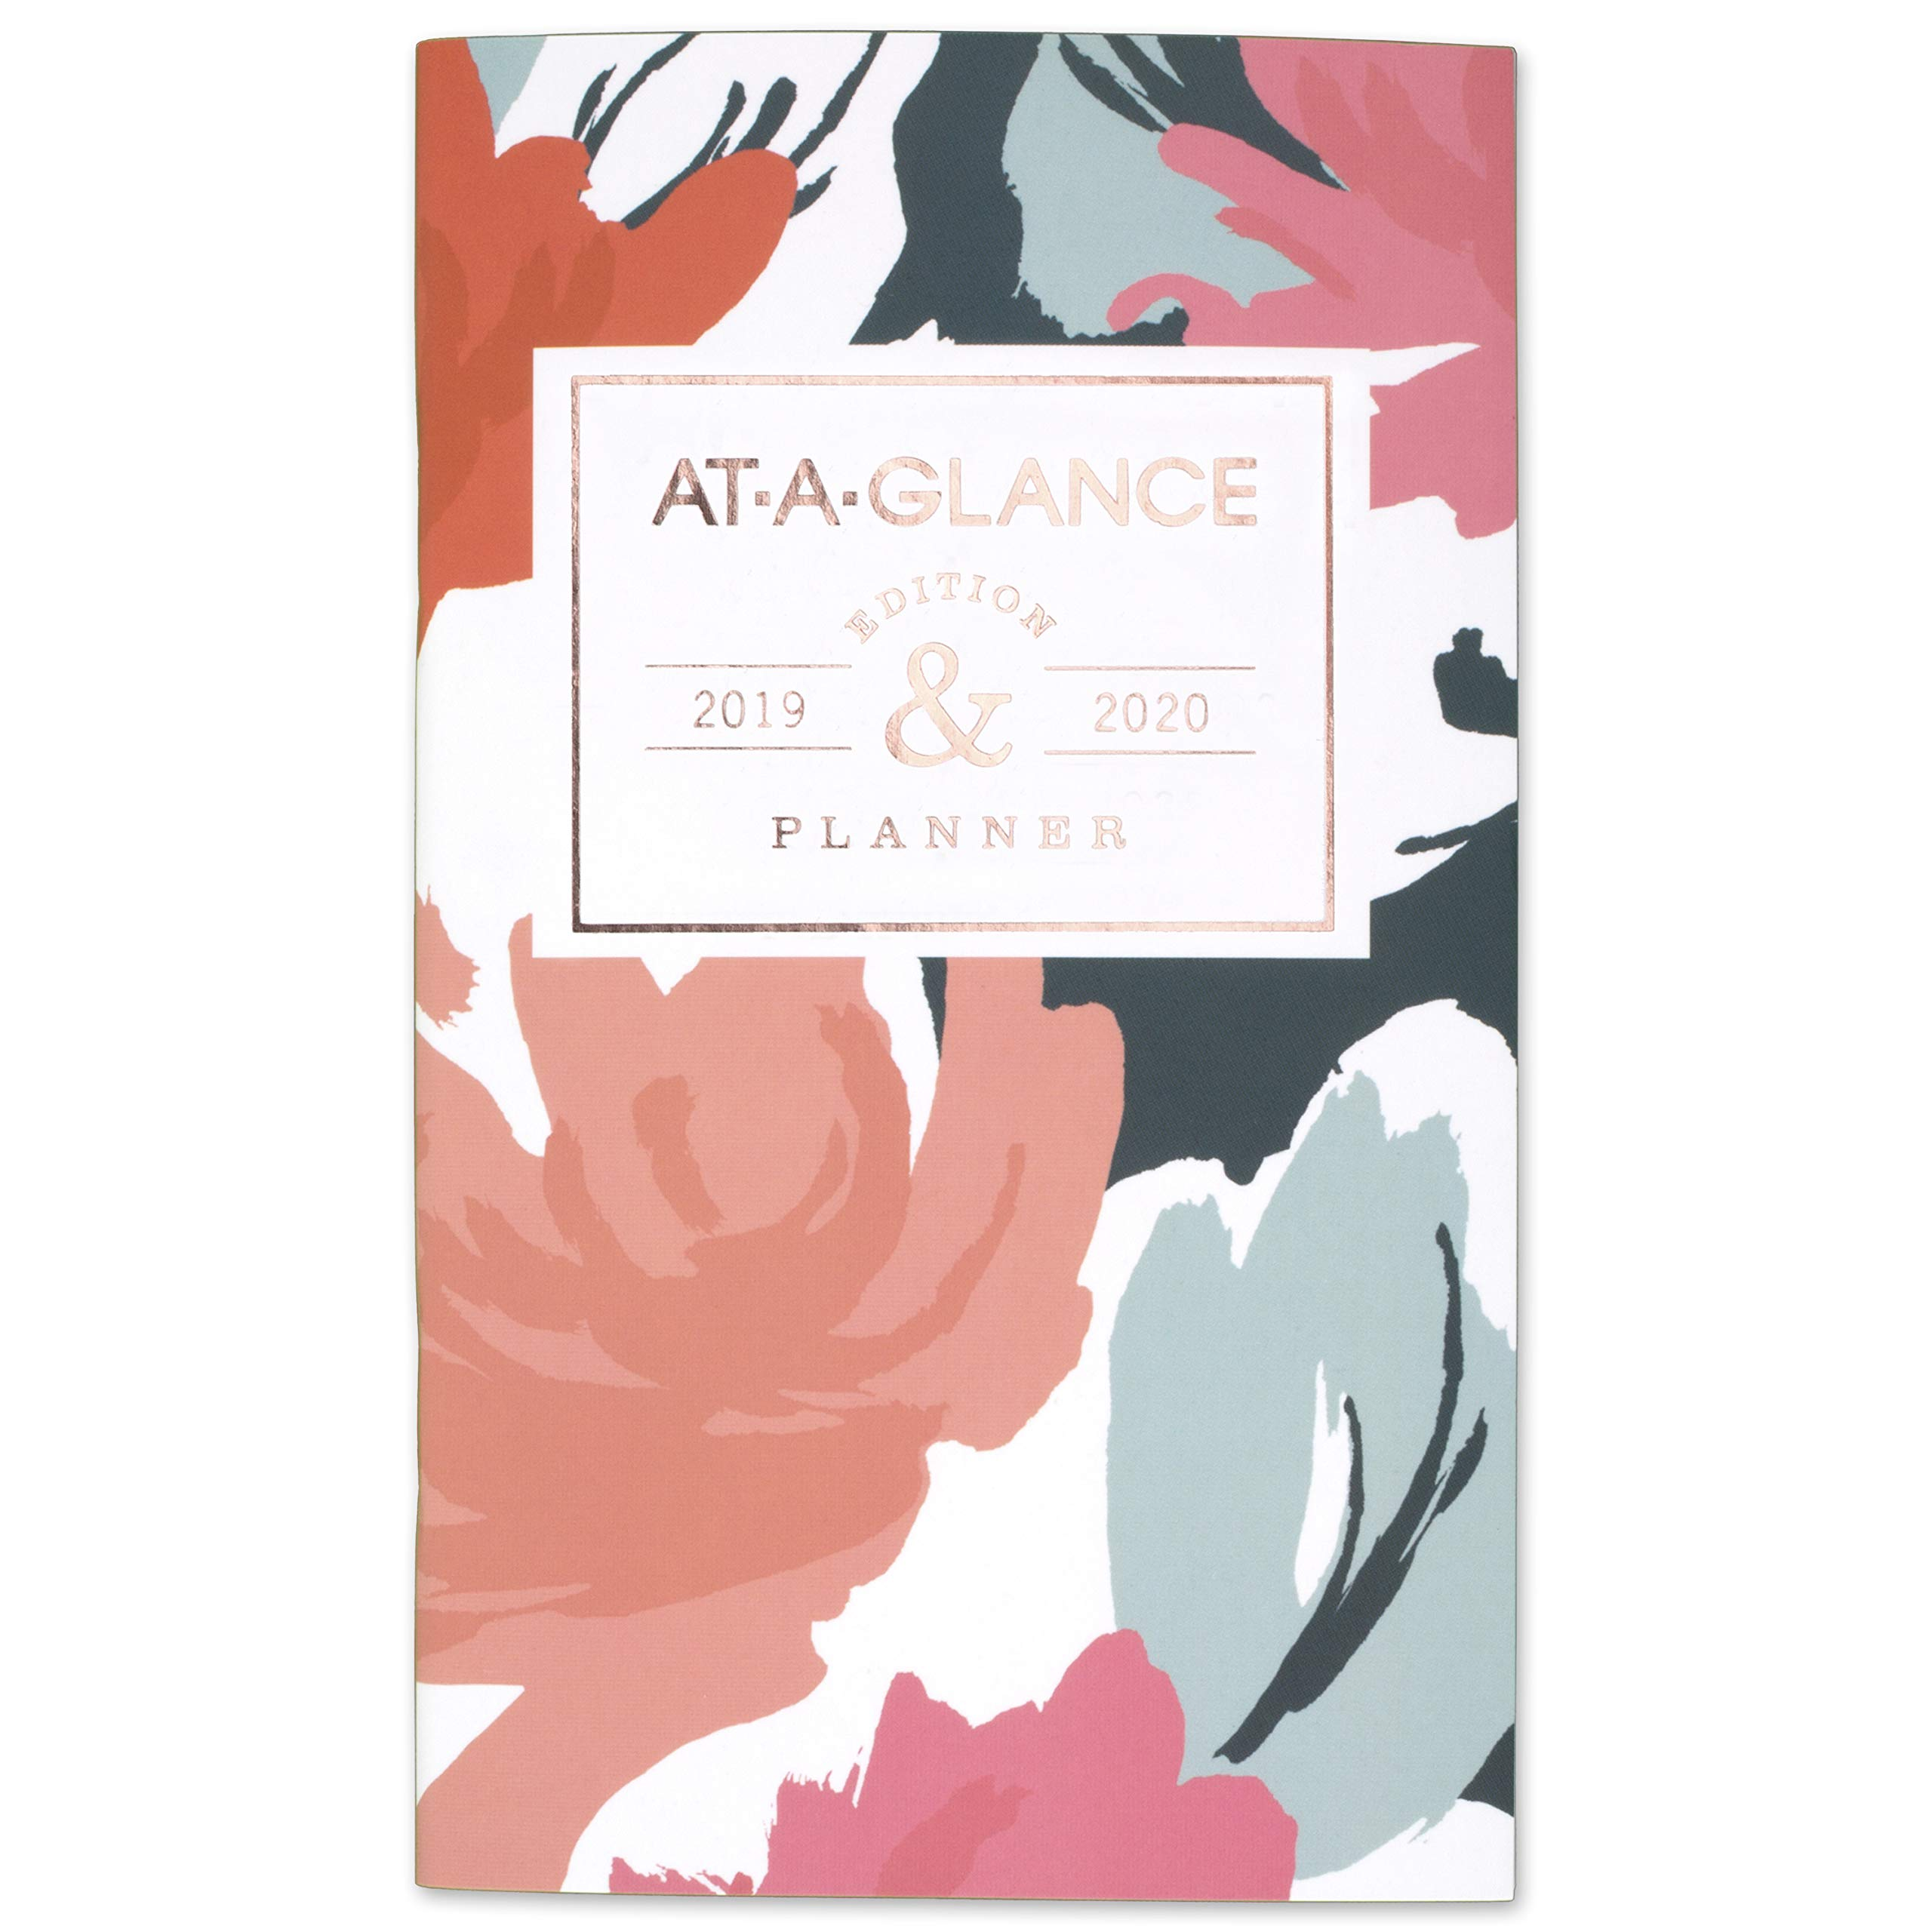 "AT-A-GLANCE 2019-2020 Monthly Planner, 2 Year, 3-1/2"" x 6"", Pocket, Badge Floral (1148B-021)"